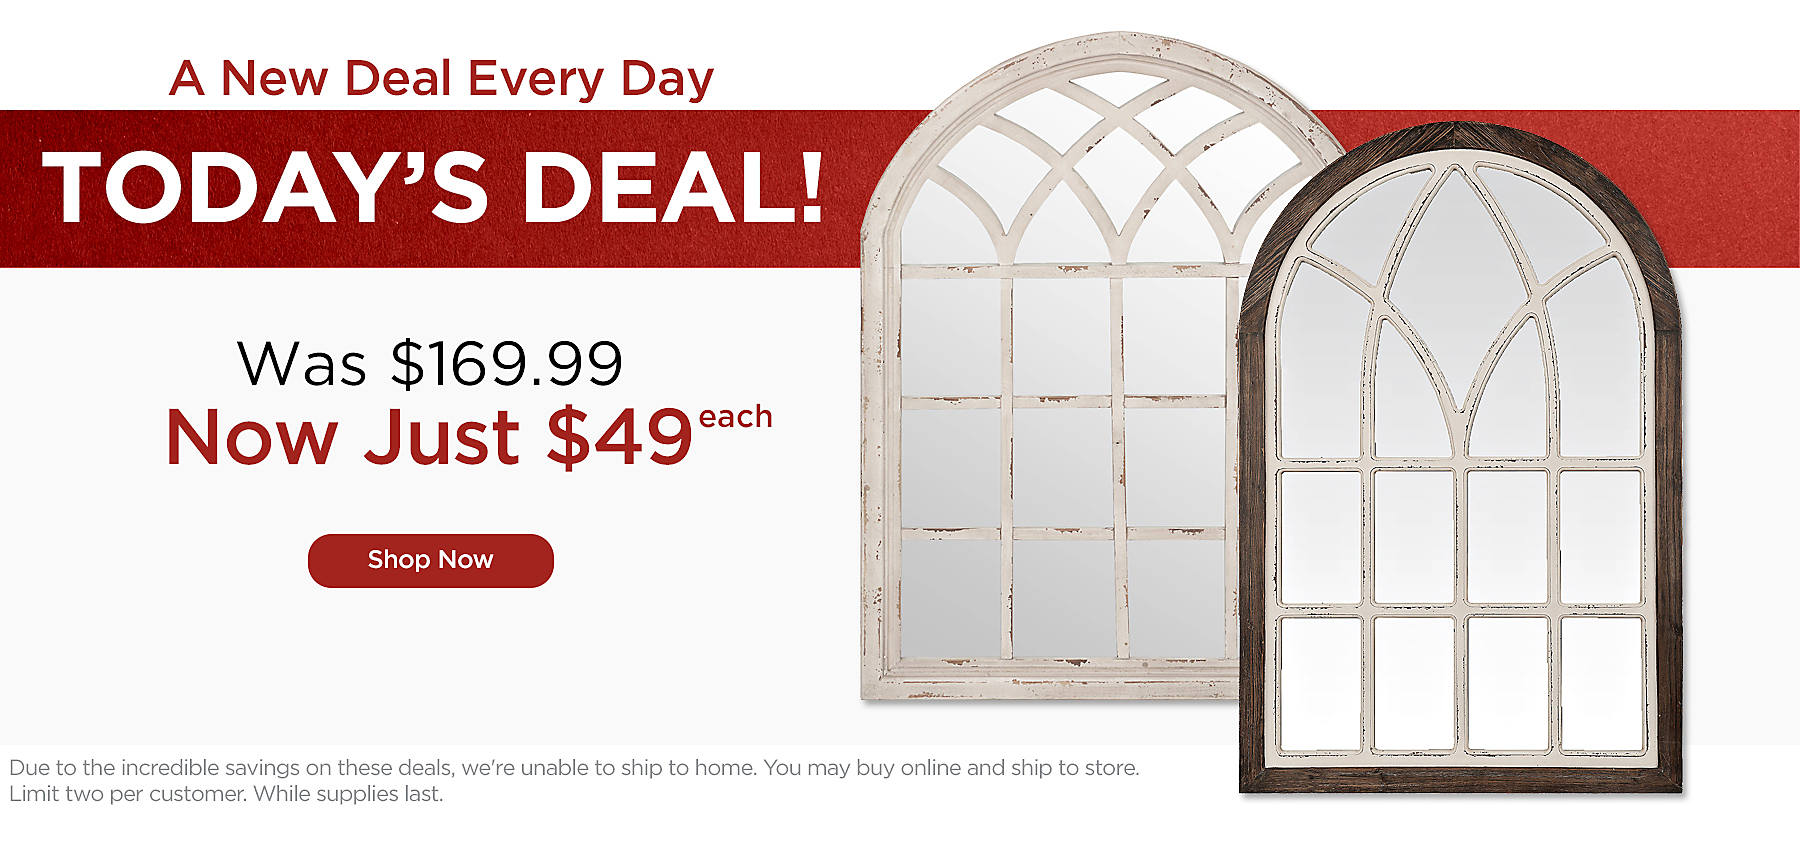 One Day Only - Your Choice - Was $169.99 Now $49 Each - Due to the incredible savings on these deals, we're unable to ship to home. You may buy online and ship to store.